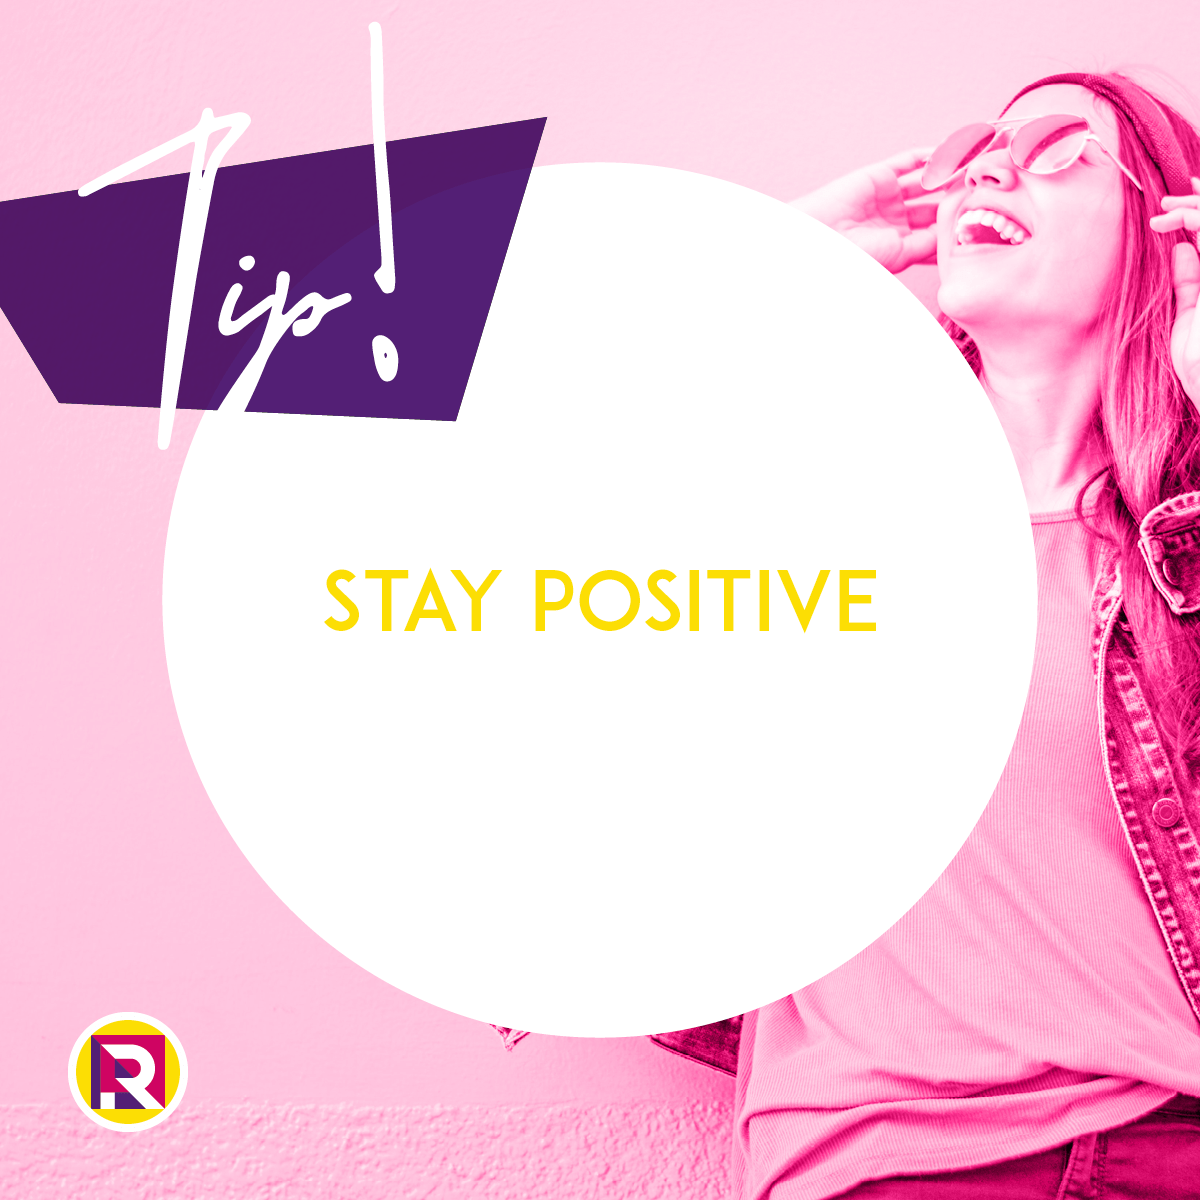 Stay positive!